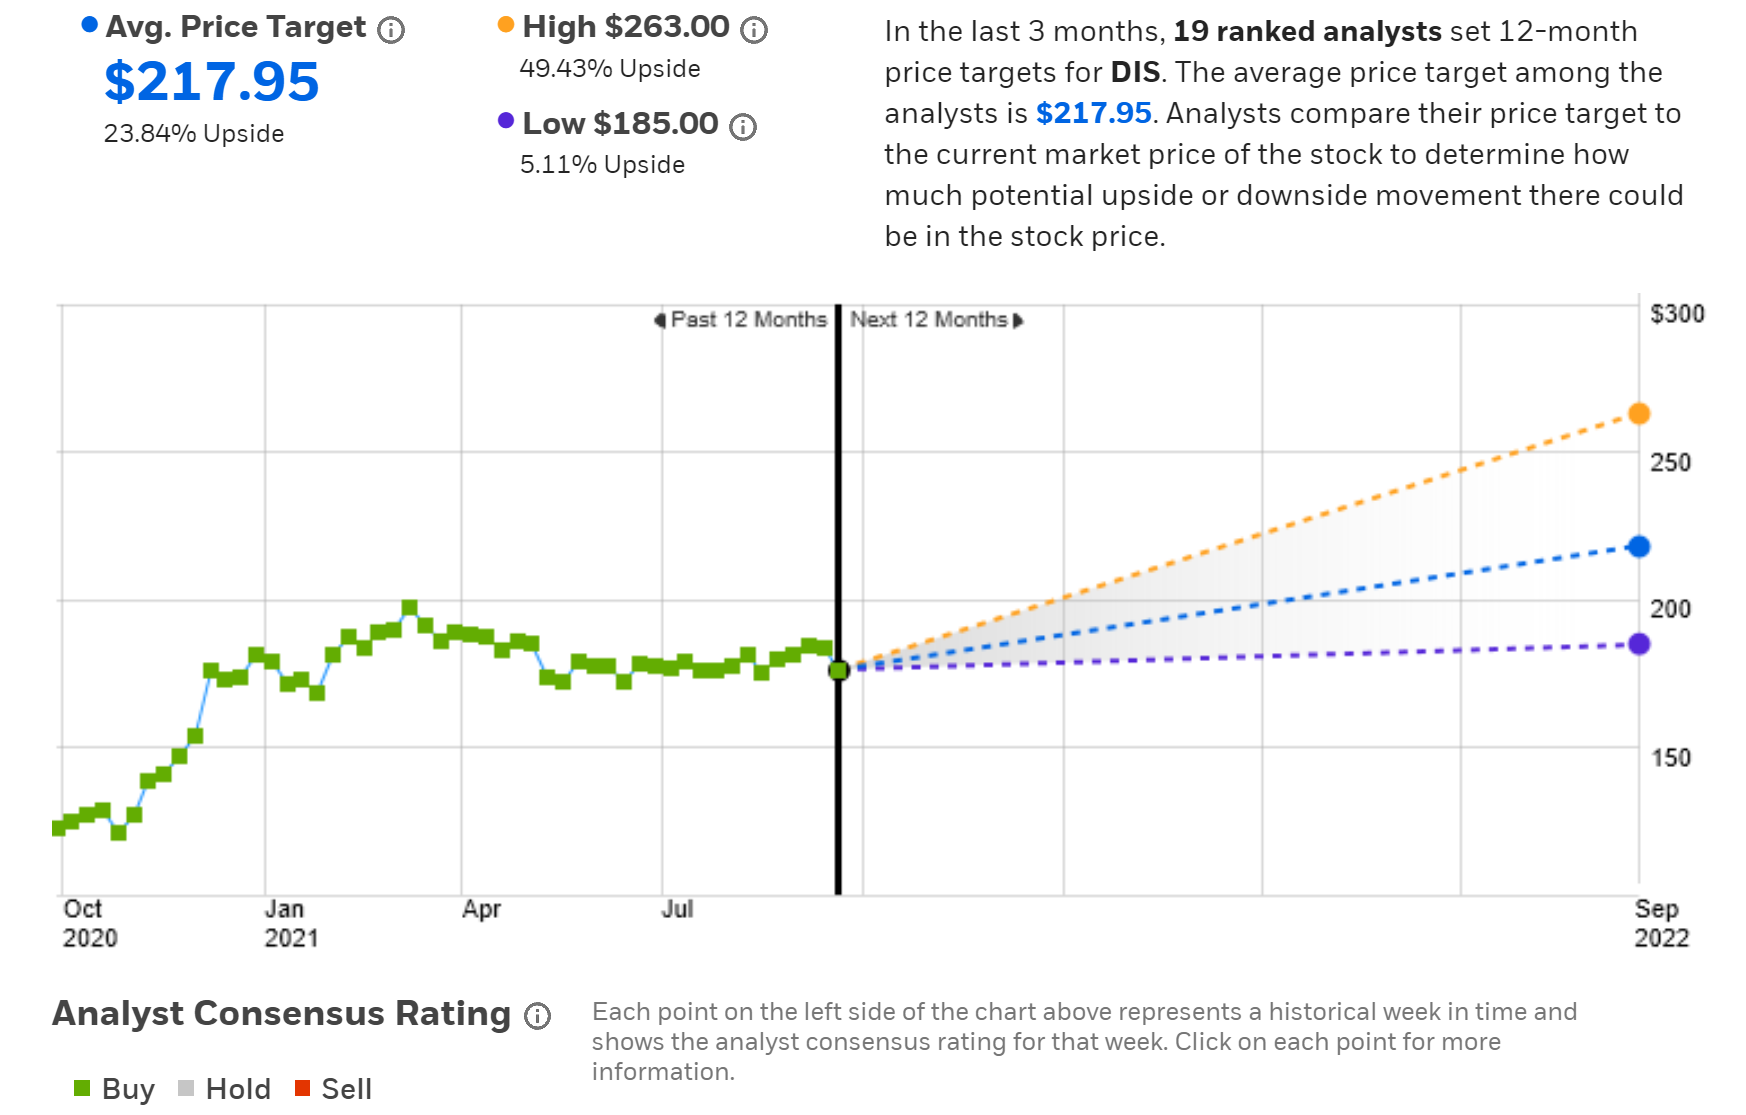 DIS Consensus Rating And 12-Month Price Target